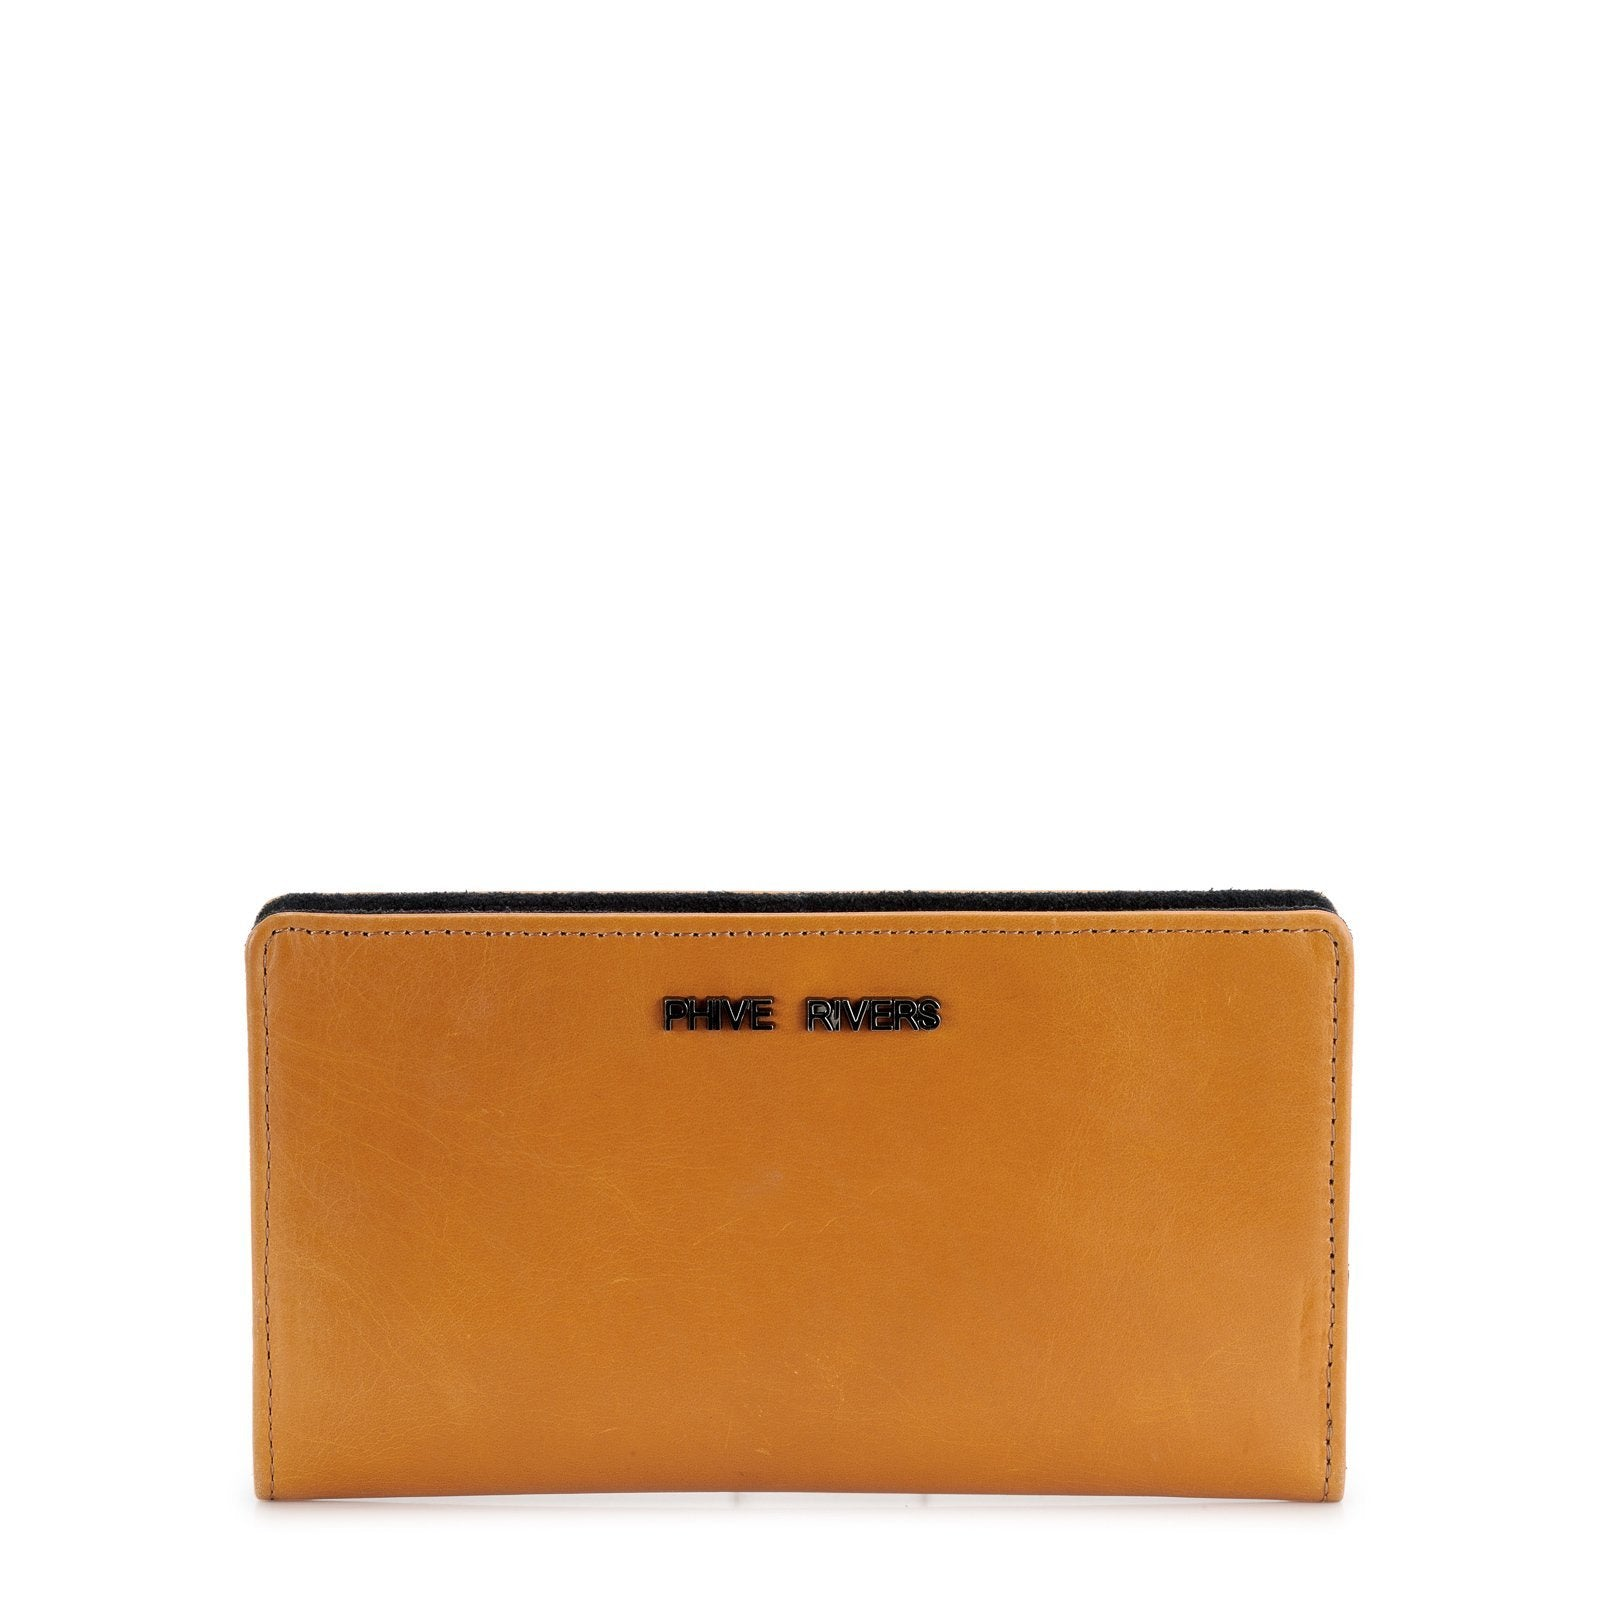 Leather Wallet - PR1238